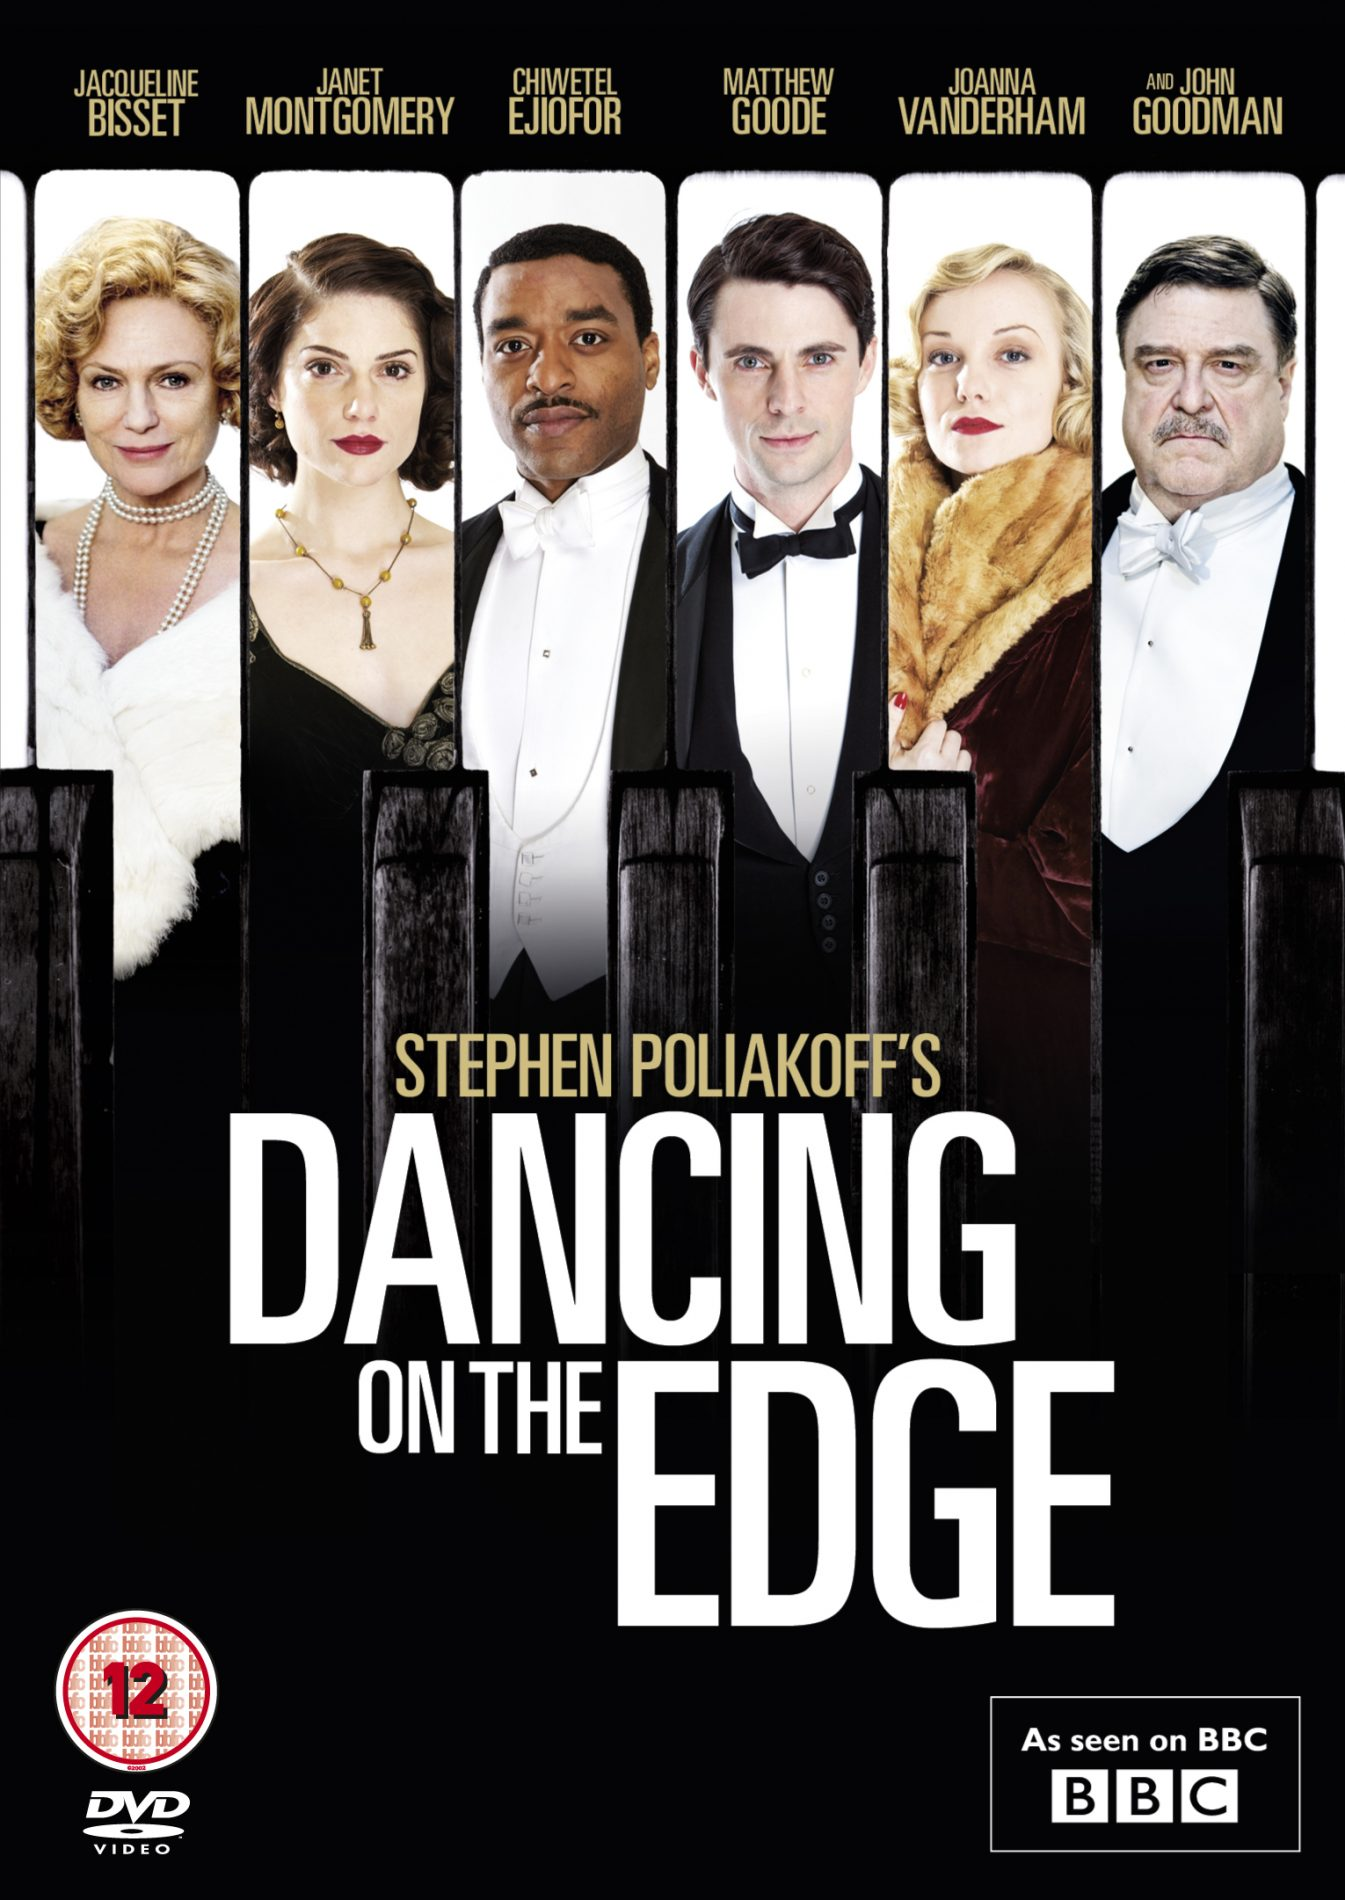 Win 1 of 5 copies of 'Dancing on the Edge' DVDs and soundtrack